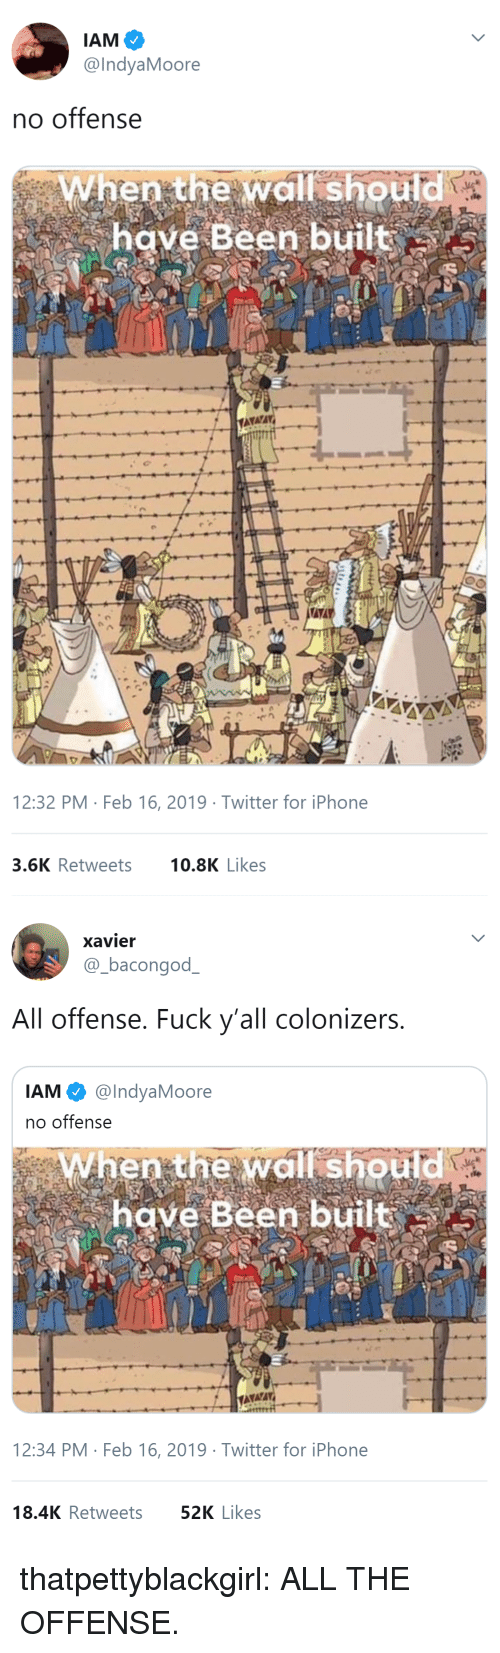 Iphone, Tumblr, and Twitter: @IndyaMoore  no offense  When the wall should  have Been built  12:32 PM Feb 16, 2019 Twitter for iPhone  3.6K Retweets 0.8K Likes   xavier  @-bacongodー  All offense. Fuck y'all colonizers  IAM @IndyaMoore  no offense  When the wall should  have Been built  12:34 PM Feb 16, 2019 Twitter for iPhone  18.4K Retweets  52K Likes thatpettyblackgirl:   ALL THE OFFENSE.